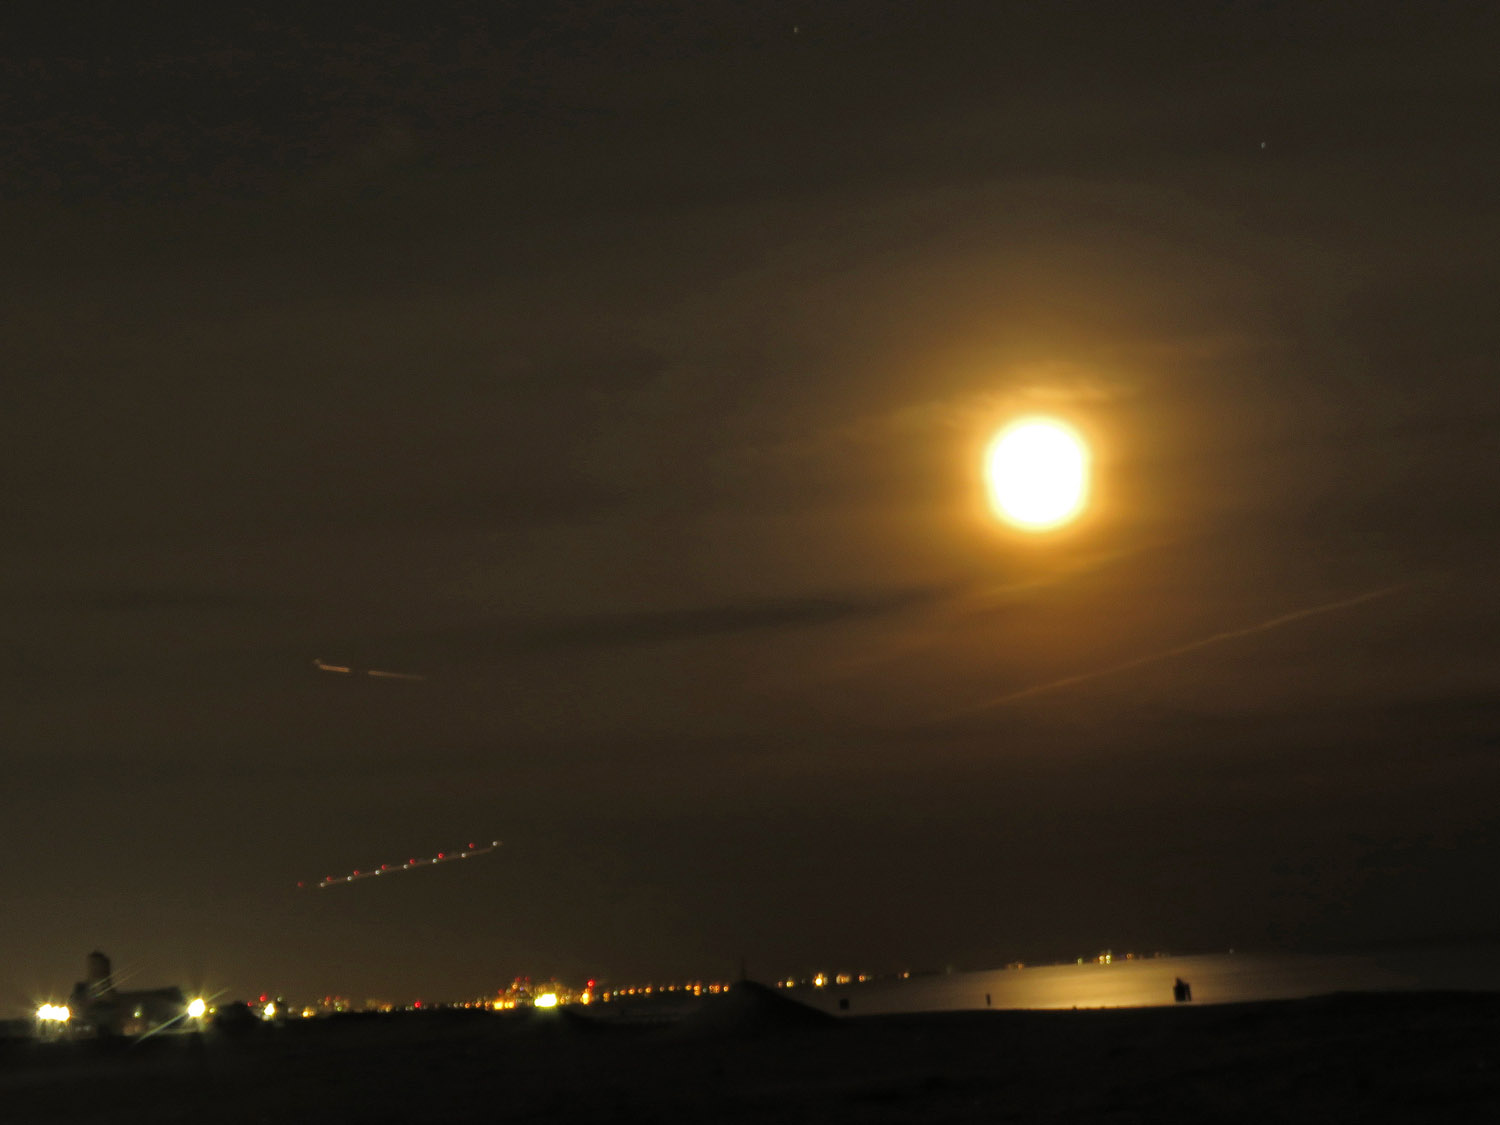 Time-lapse (8 seconds) photo of supermoon with lights of planes landing at Kennedy Airport.